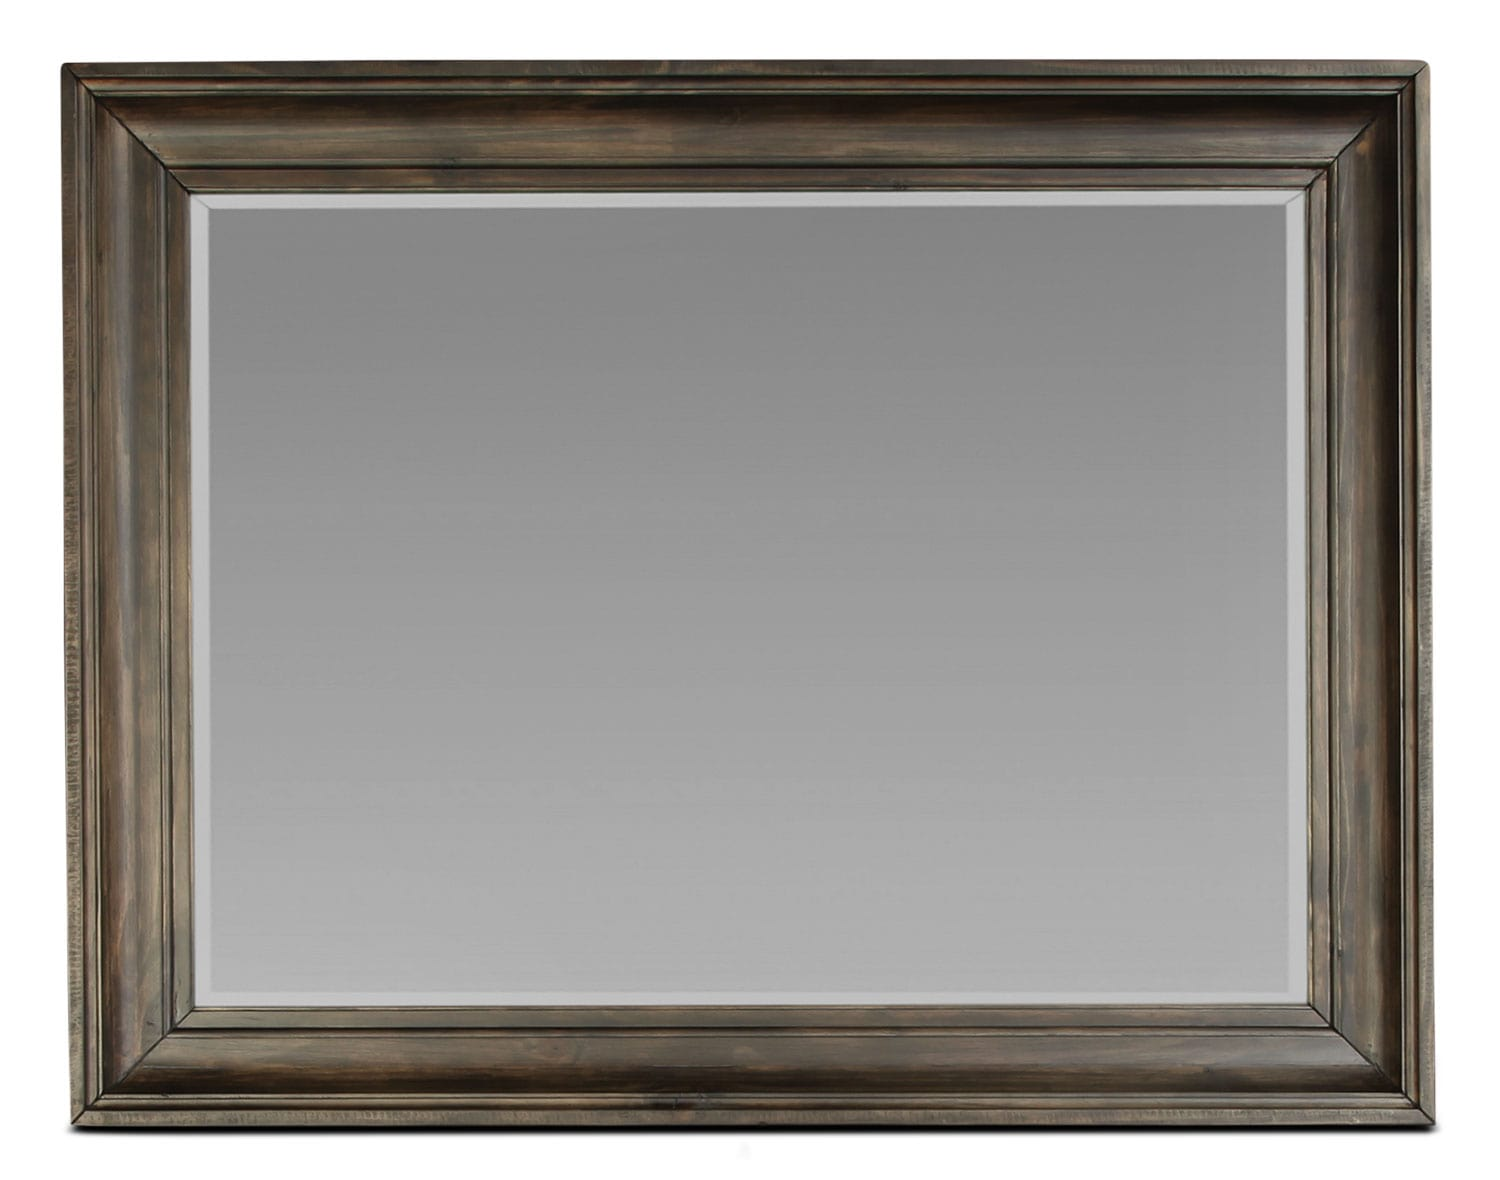 Calistoga Mirror - Charcoal